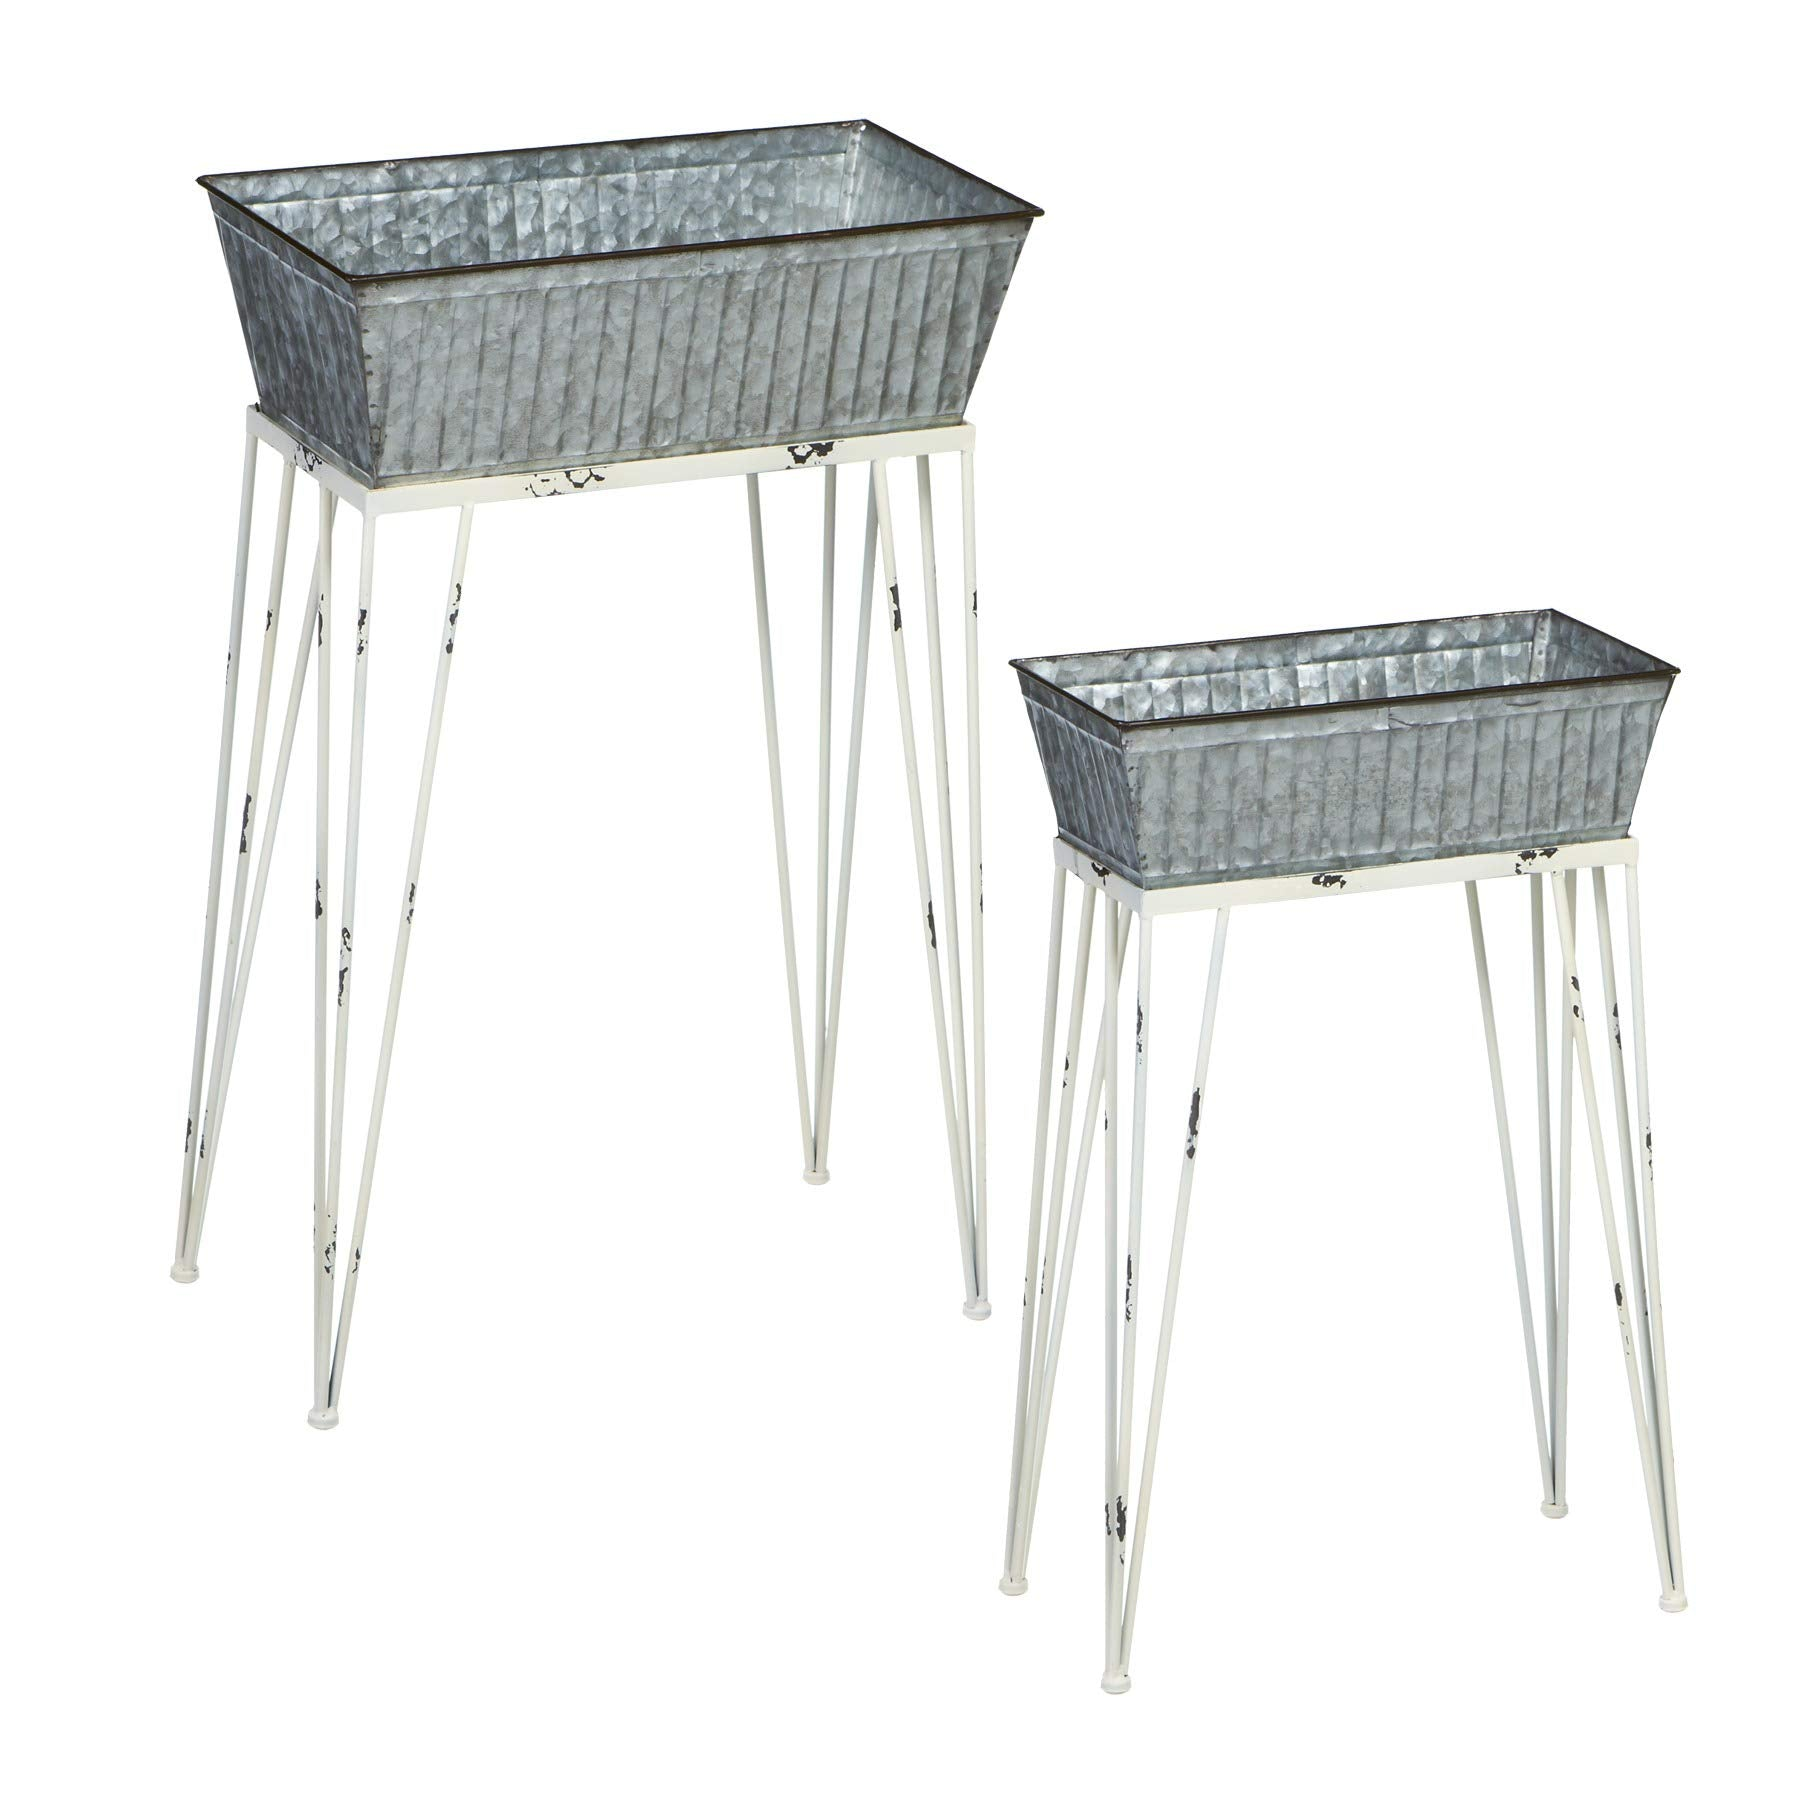 CBK 2 Piece Set Tapered Rectangle Galvanized Plant Stand with White Legs 164076